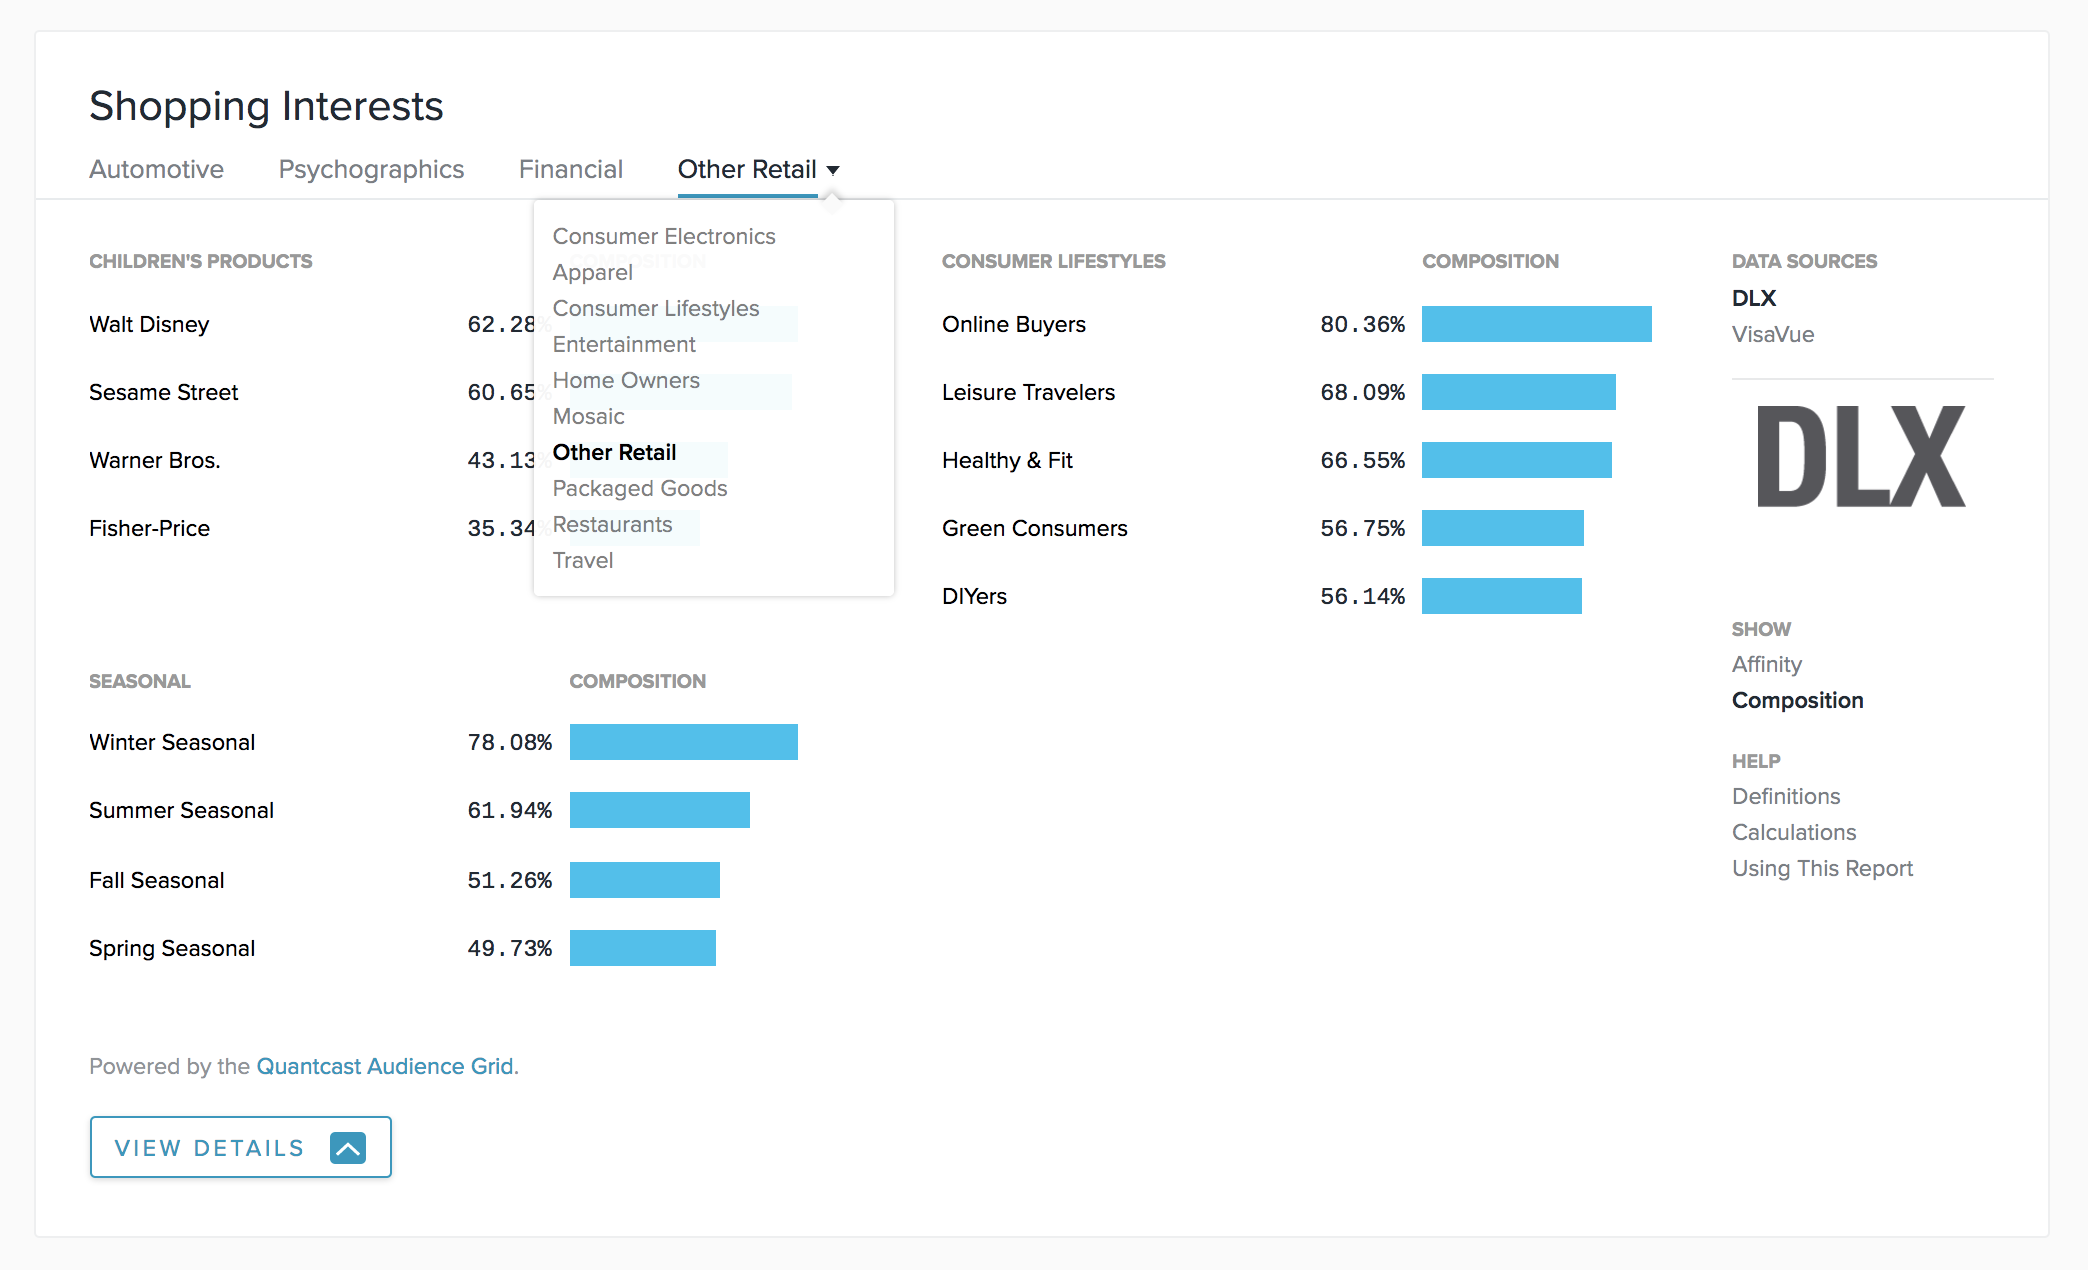 Is there a topic you're missing out on? Find out how likely your users are to be health fanatics, sports fans, or clothing shopaholics. Use Quantcast to dive deeper into where your users' interests lie.